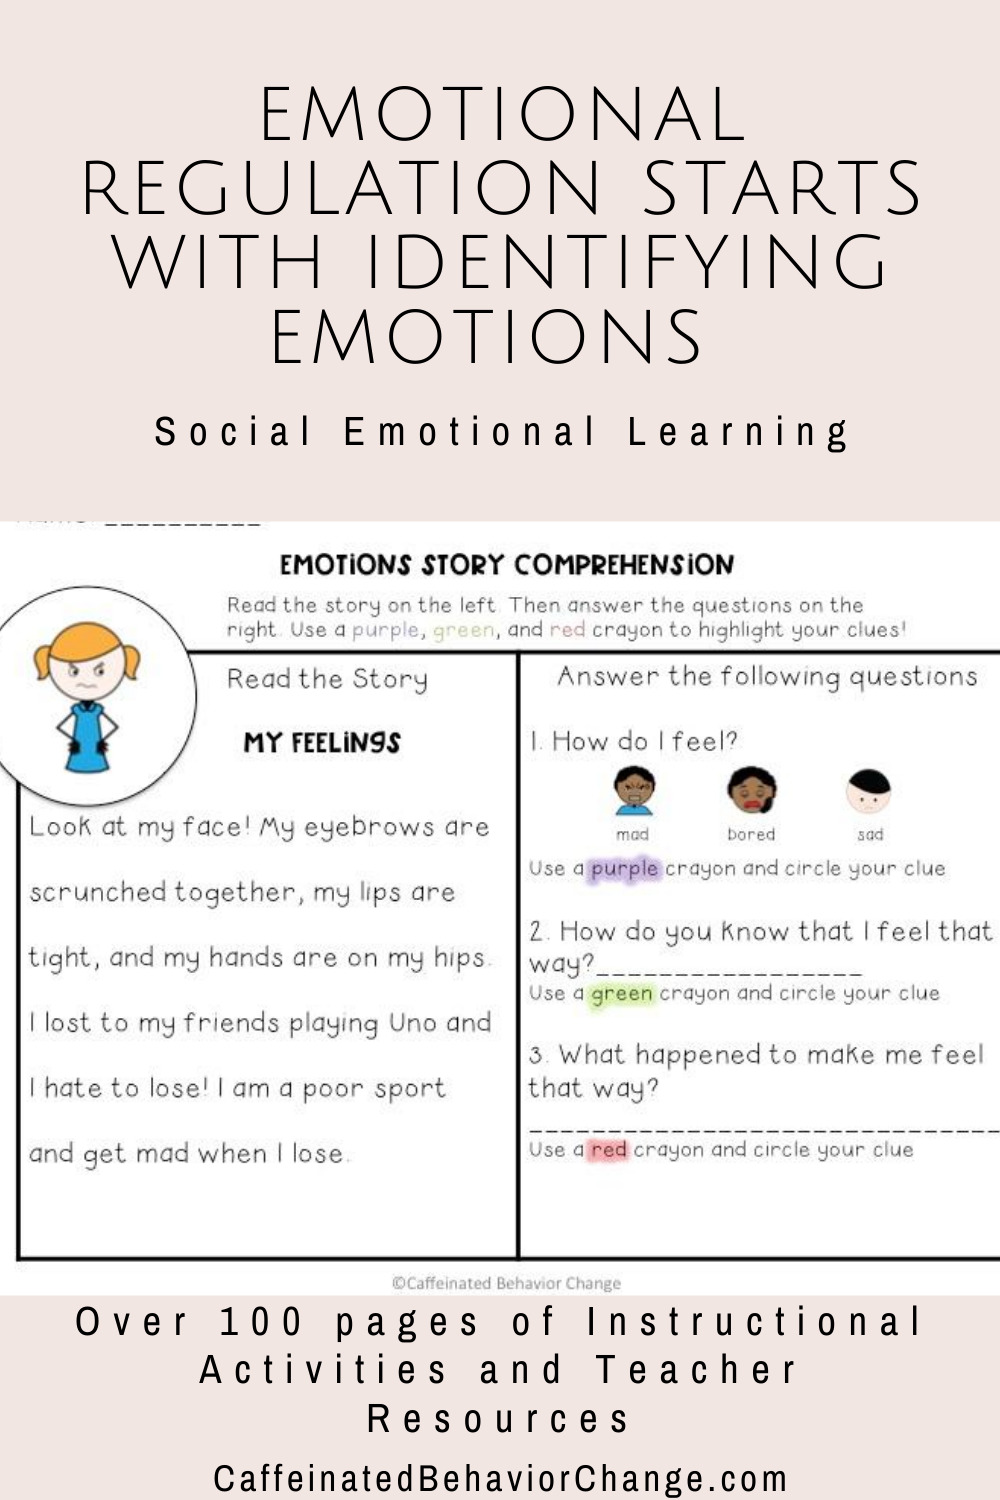 Teaching Emotional Regulation Starts With Identifying Emotions And What Those Emotions Actually Social Emotional Learning Emotional Regulation Social Emotional